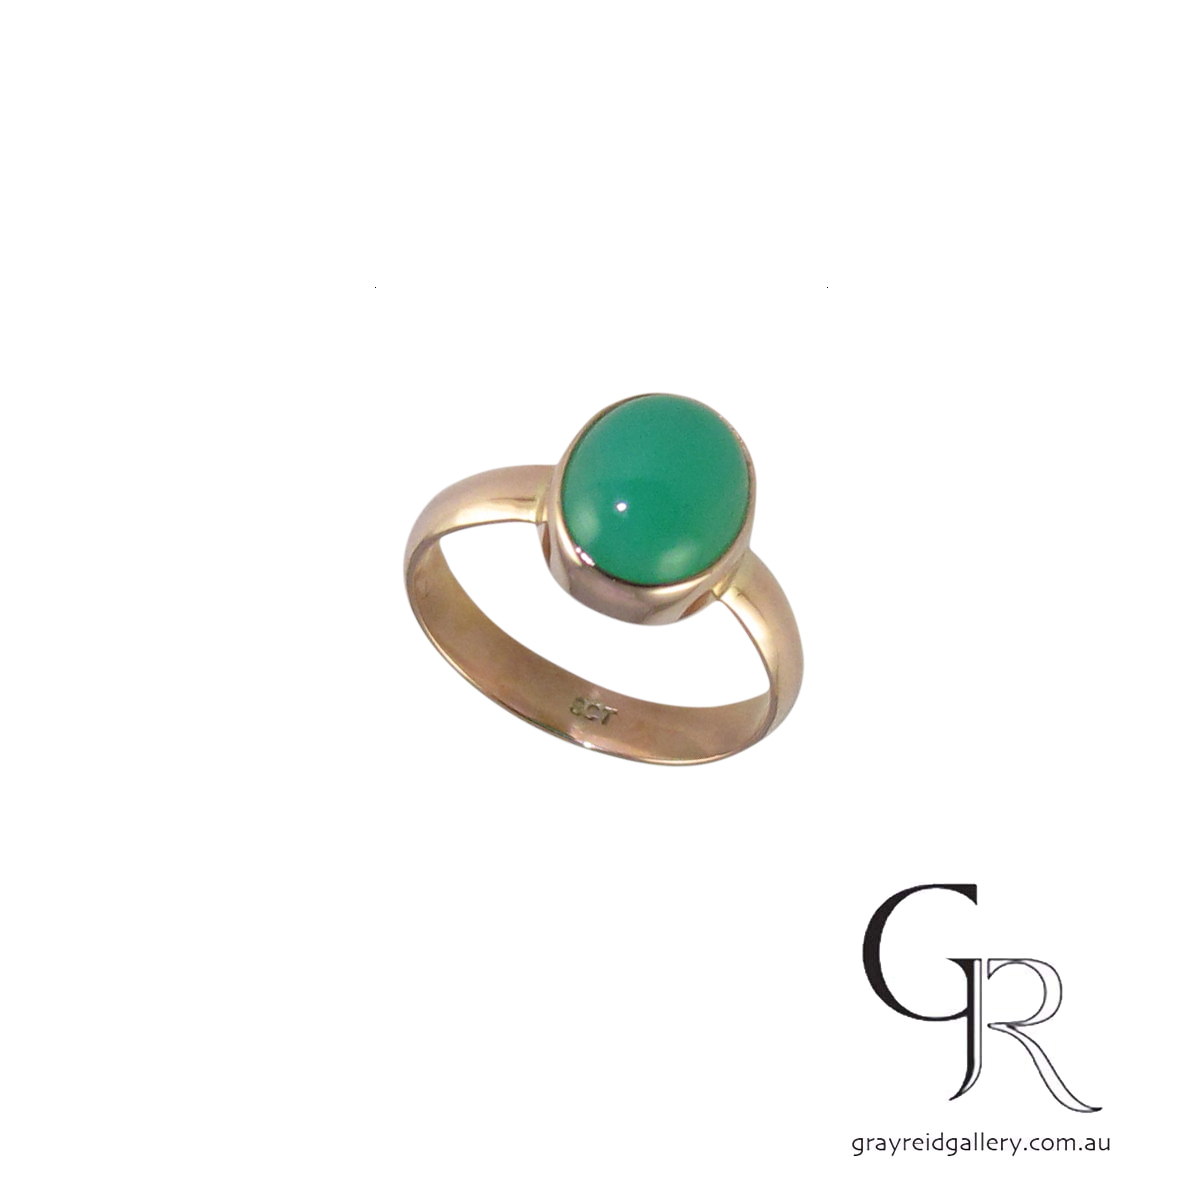 custom made 9ct gold chrysoprase ring gray reid gallery 6535 A $490.jpg